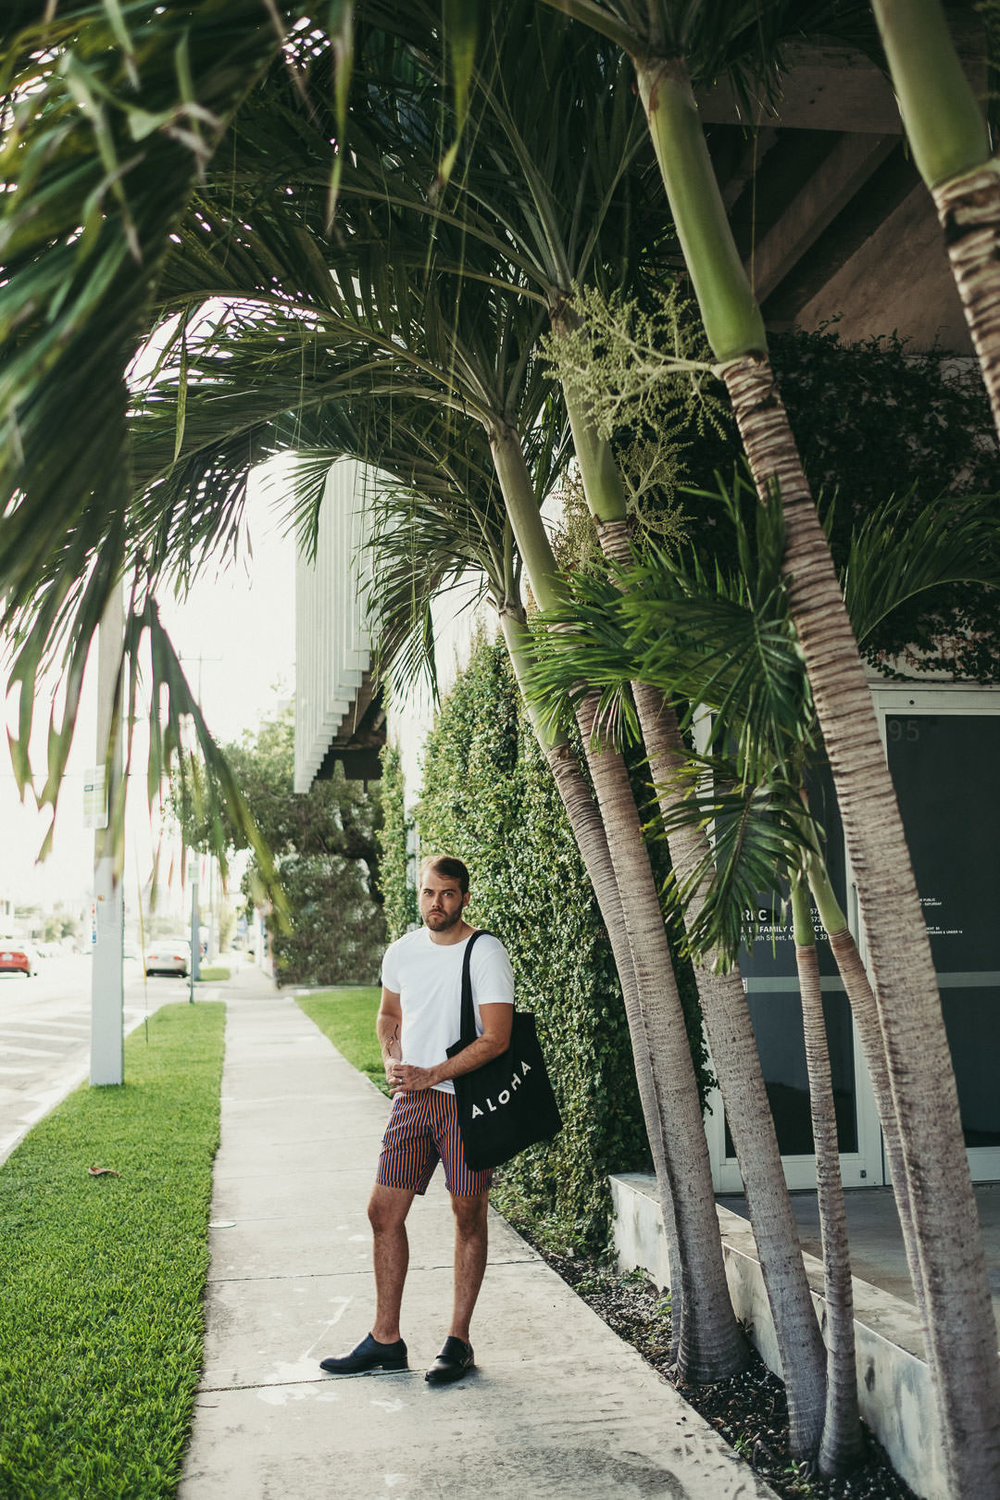 20180804_Miami City Guide - Ali Happer Photo_42.jpg